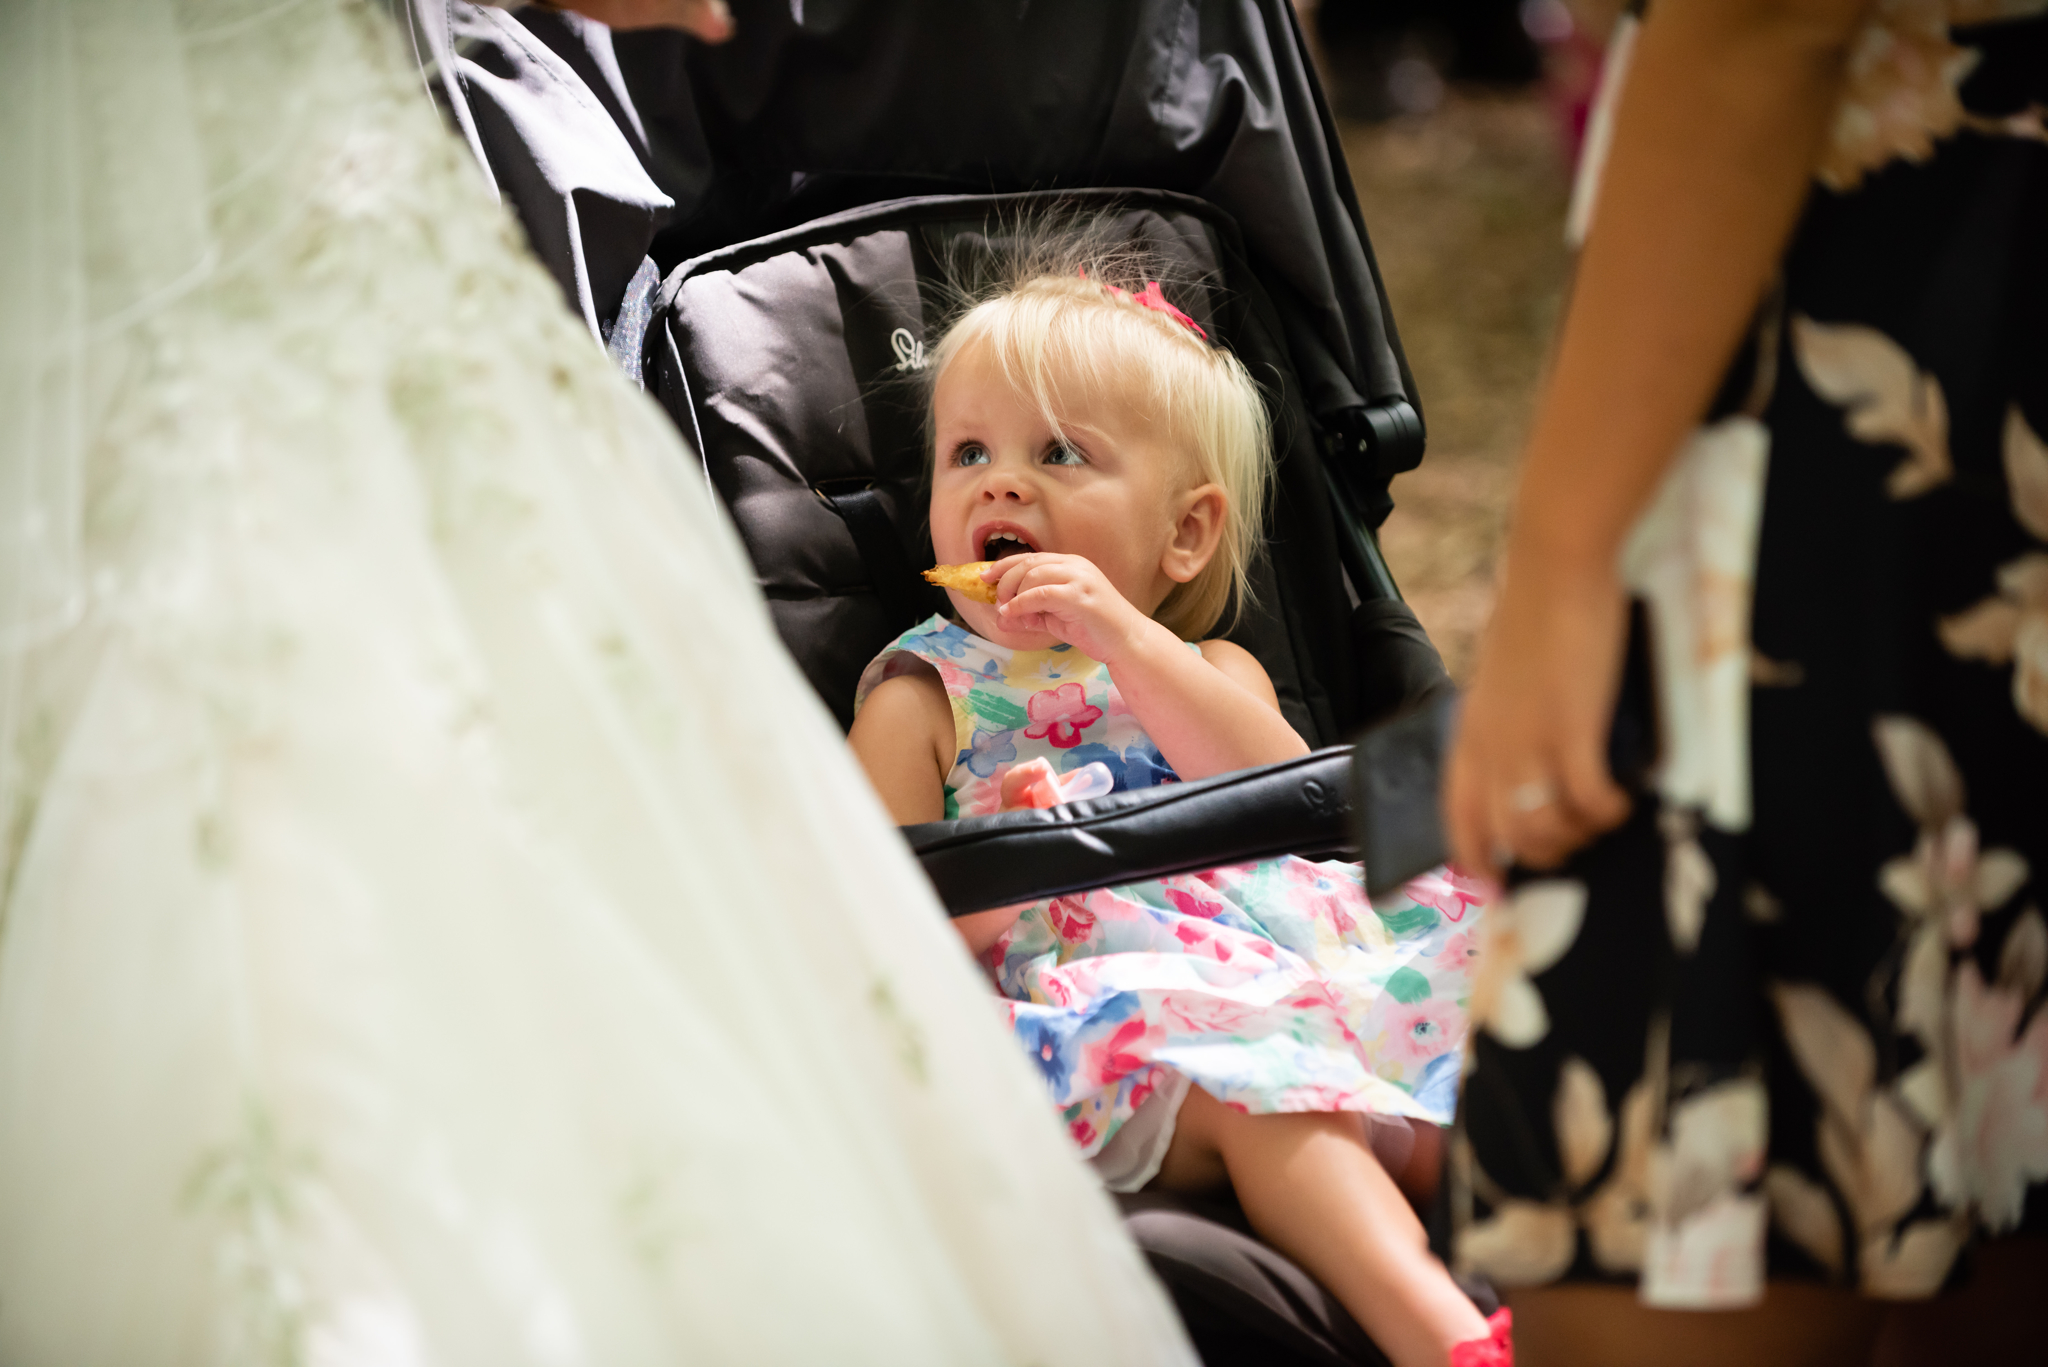 A little girl at the wedding